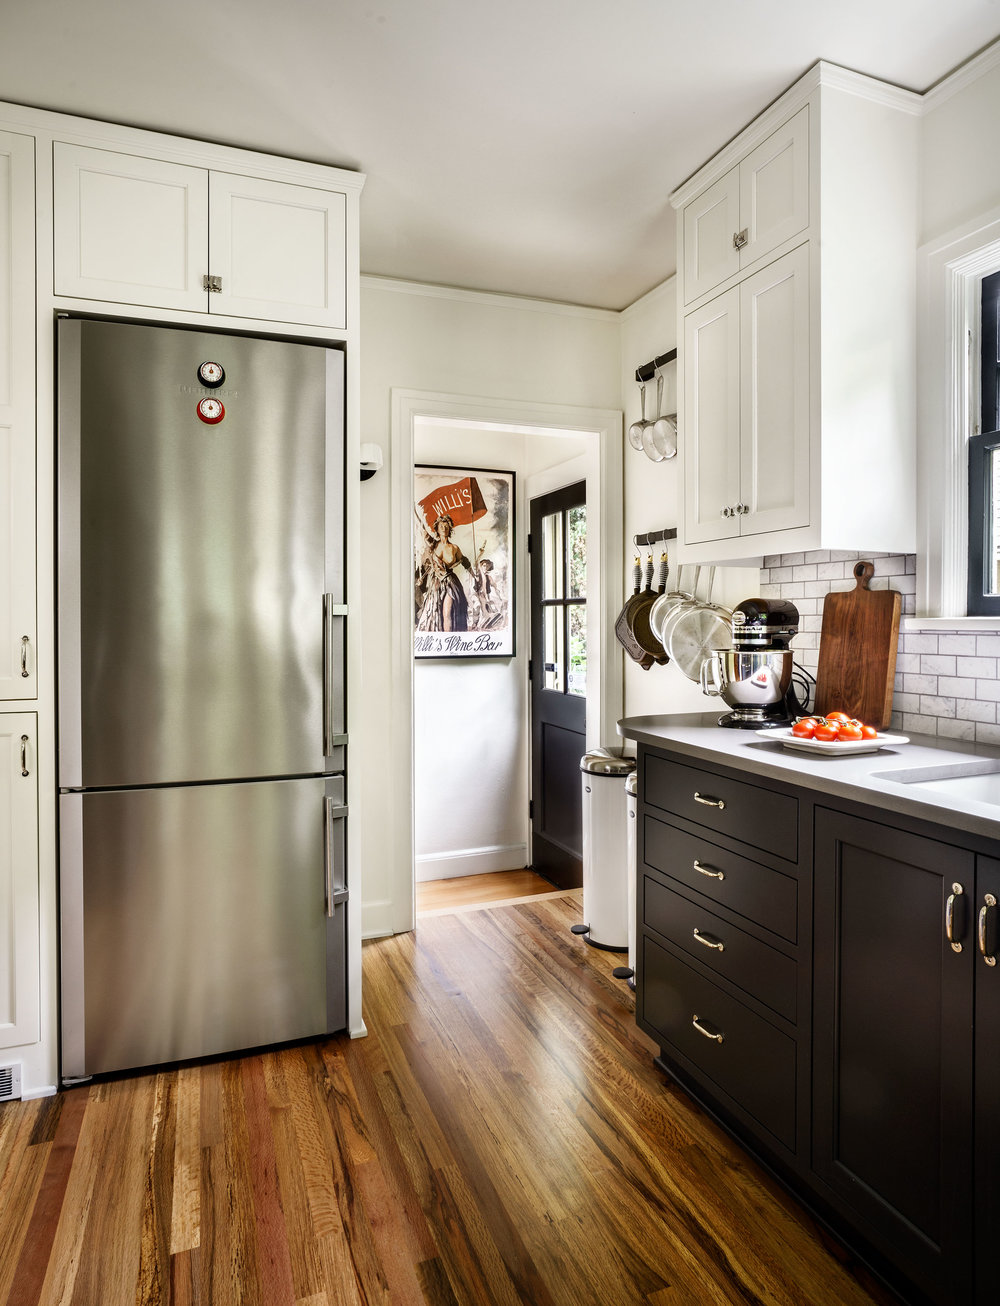 Freestanding fridge integrates into the cabinetry.